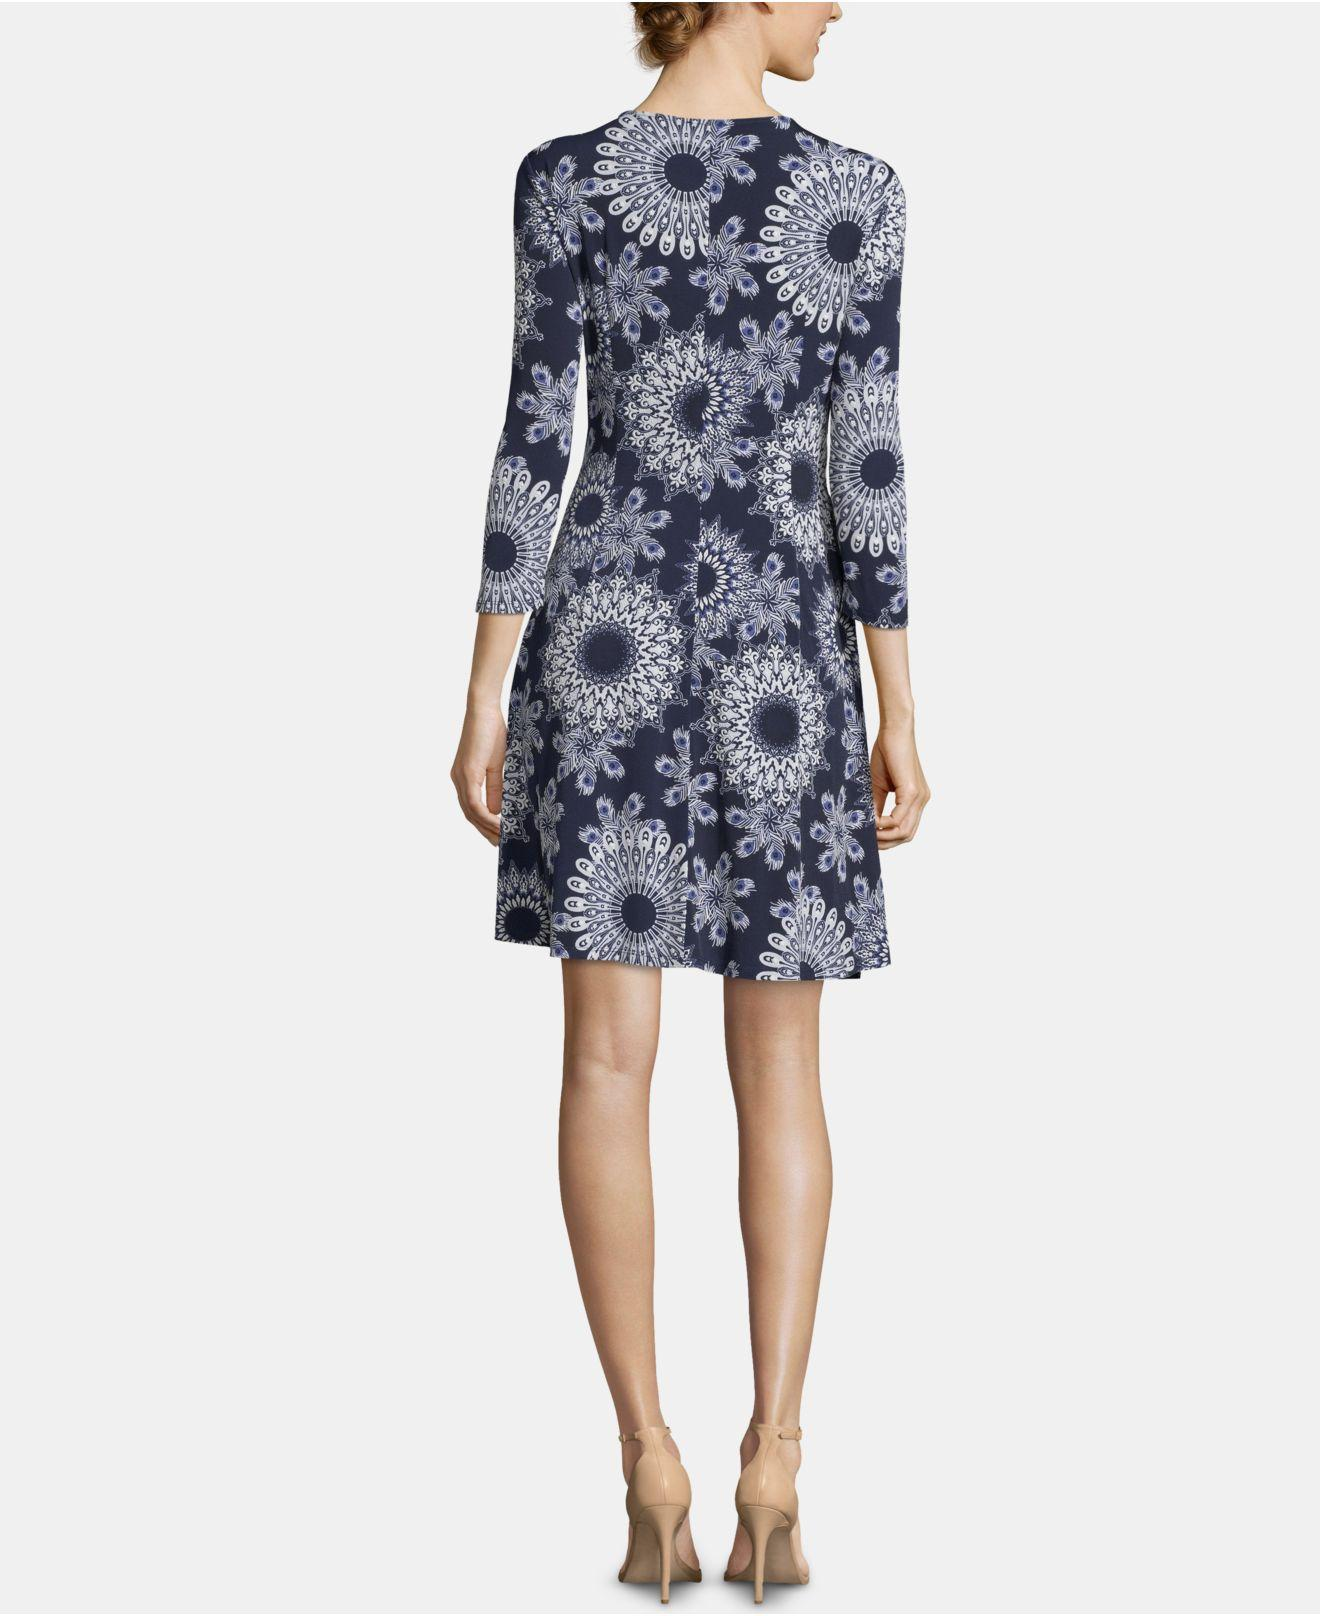 cce72aad Lyst - Eci Pull-on Printed Dress in Blue